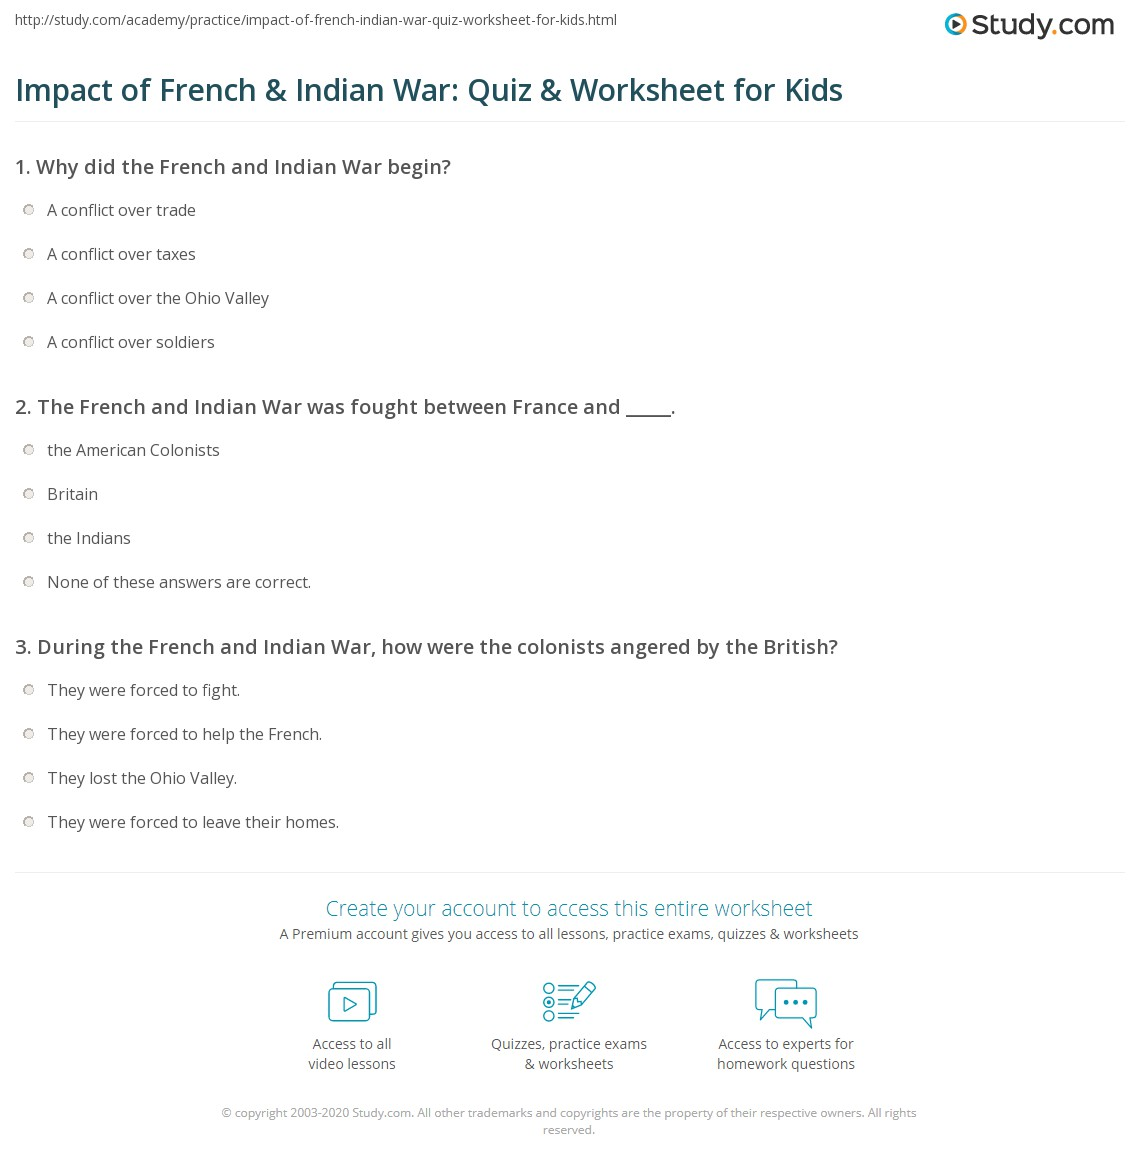 Impact Of French Indian War Quiz Worksheet For Kids Study Com